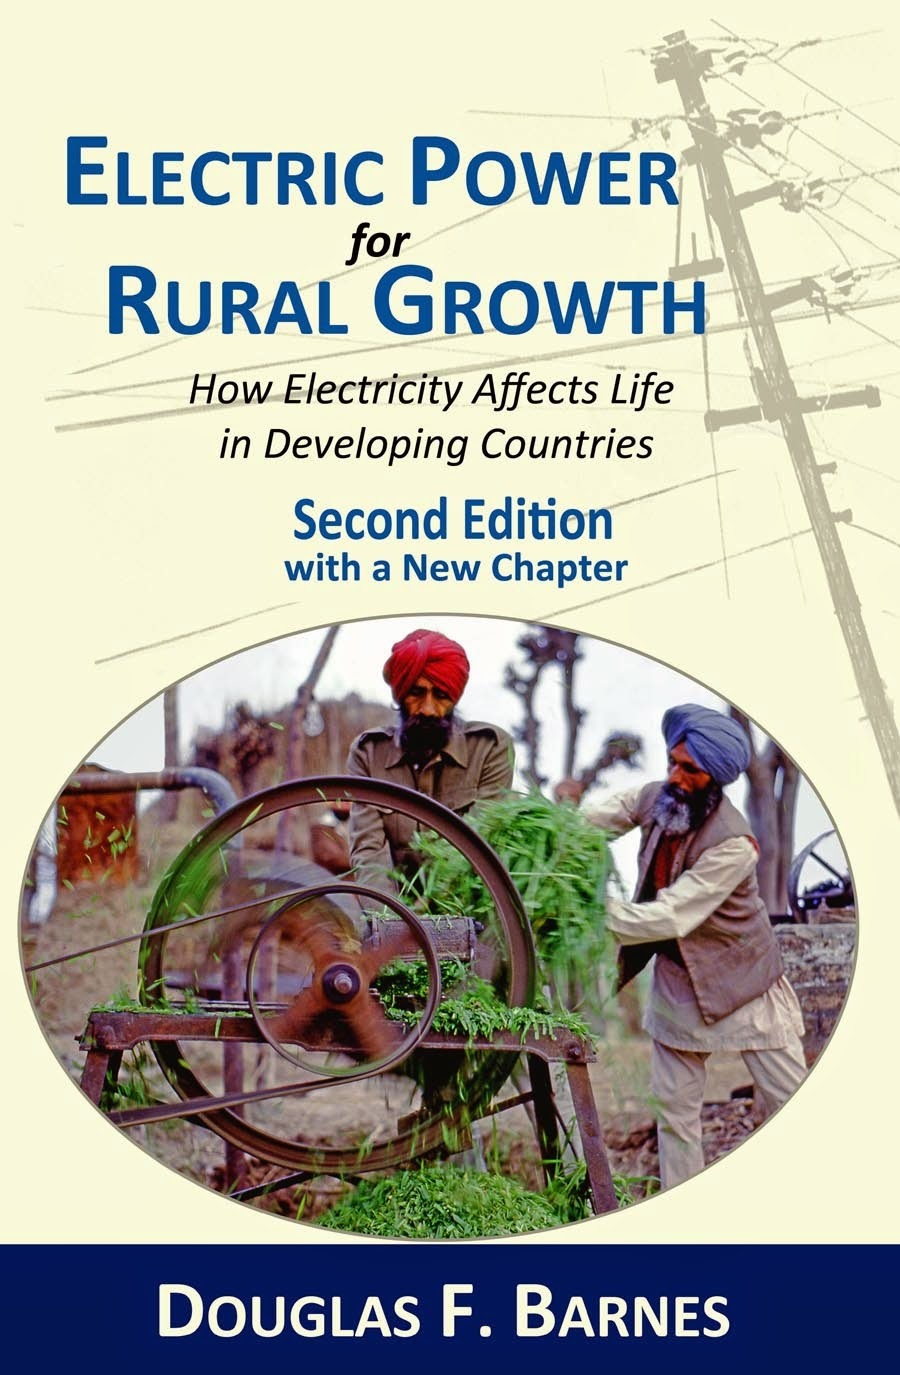 http://www.amazon.com/Electric-Power-Rural-Growth-Electricity/dp/0692303464/ref=sr_1_1?ie=UTF8&qid=1417918870&sr=8-1&keywords=electric+power+rural+growth